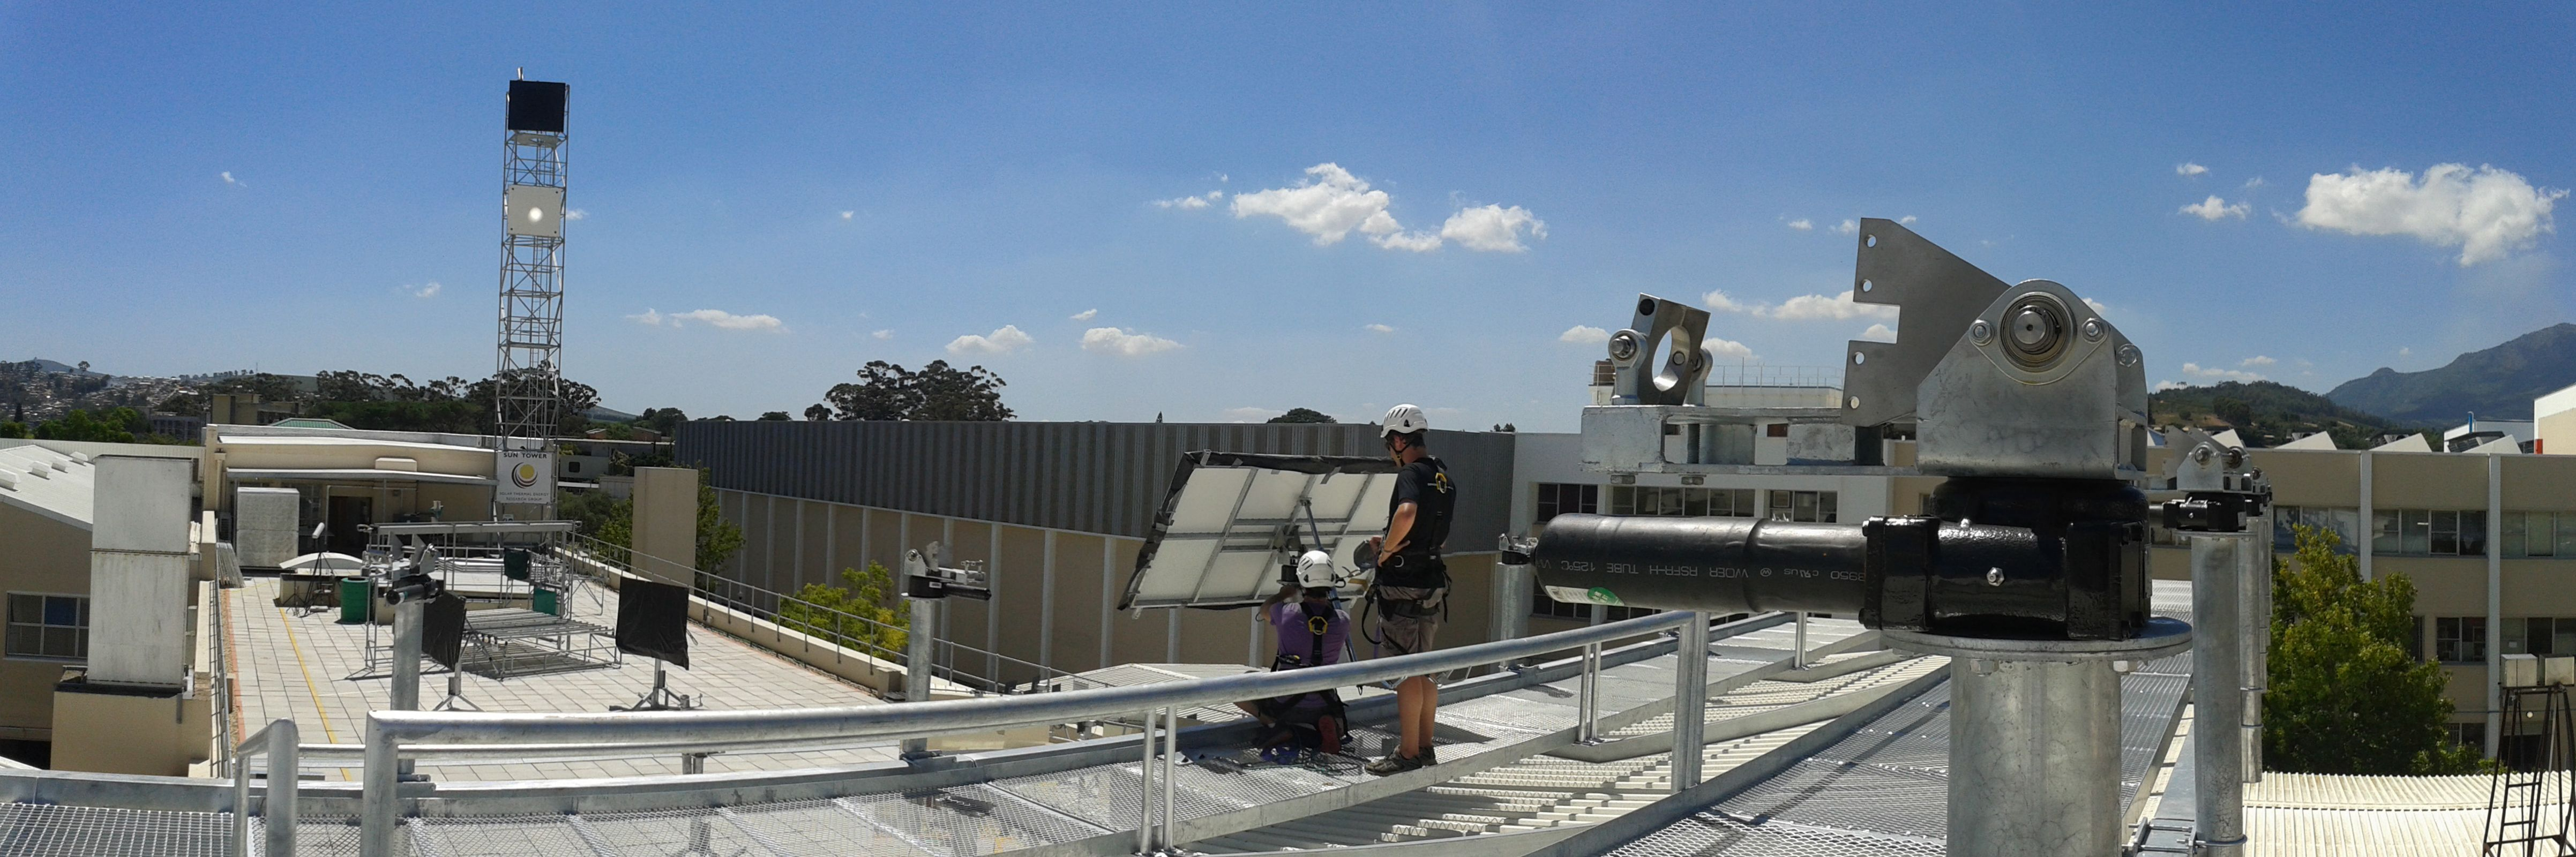 Erection of the SASOL Helio40 heliostats at the STERG facilities